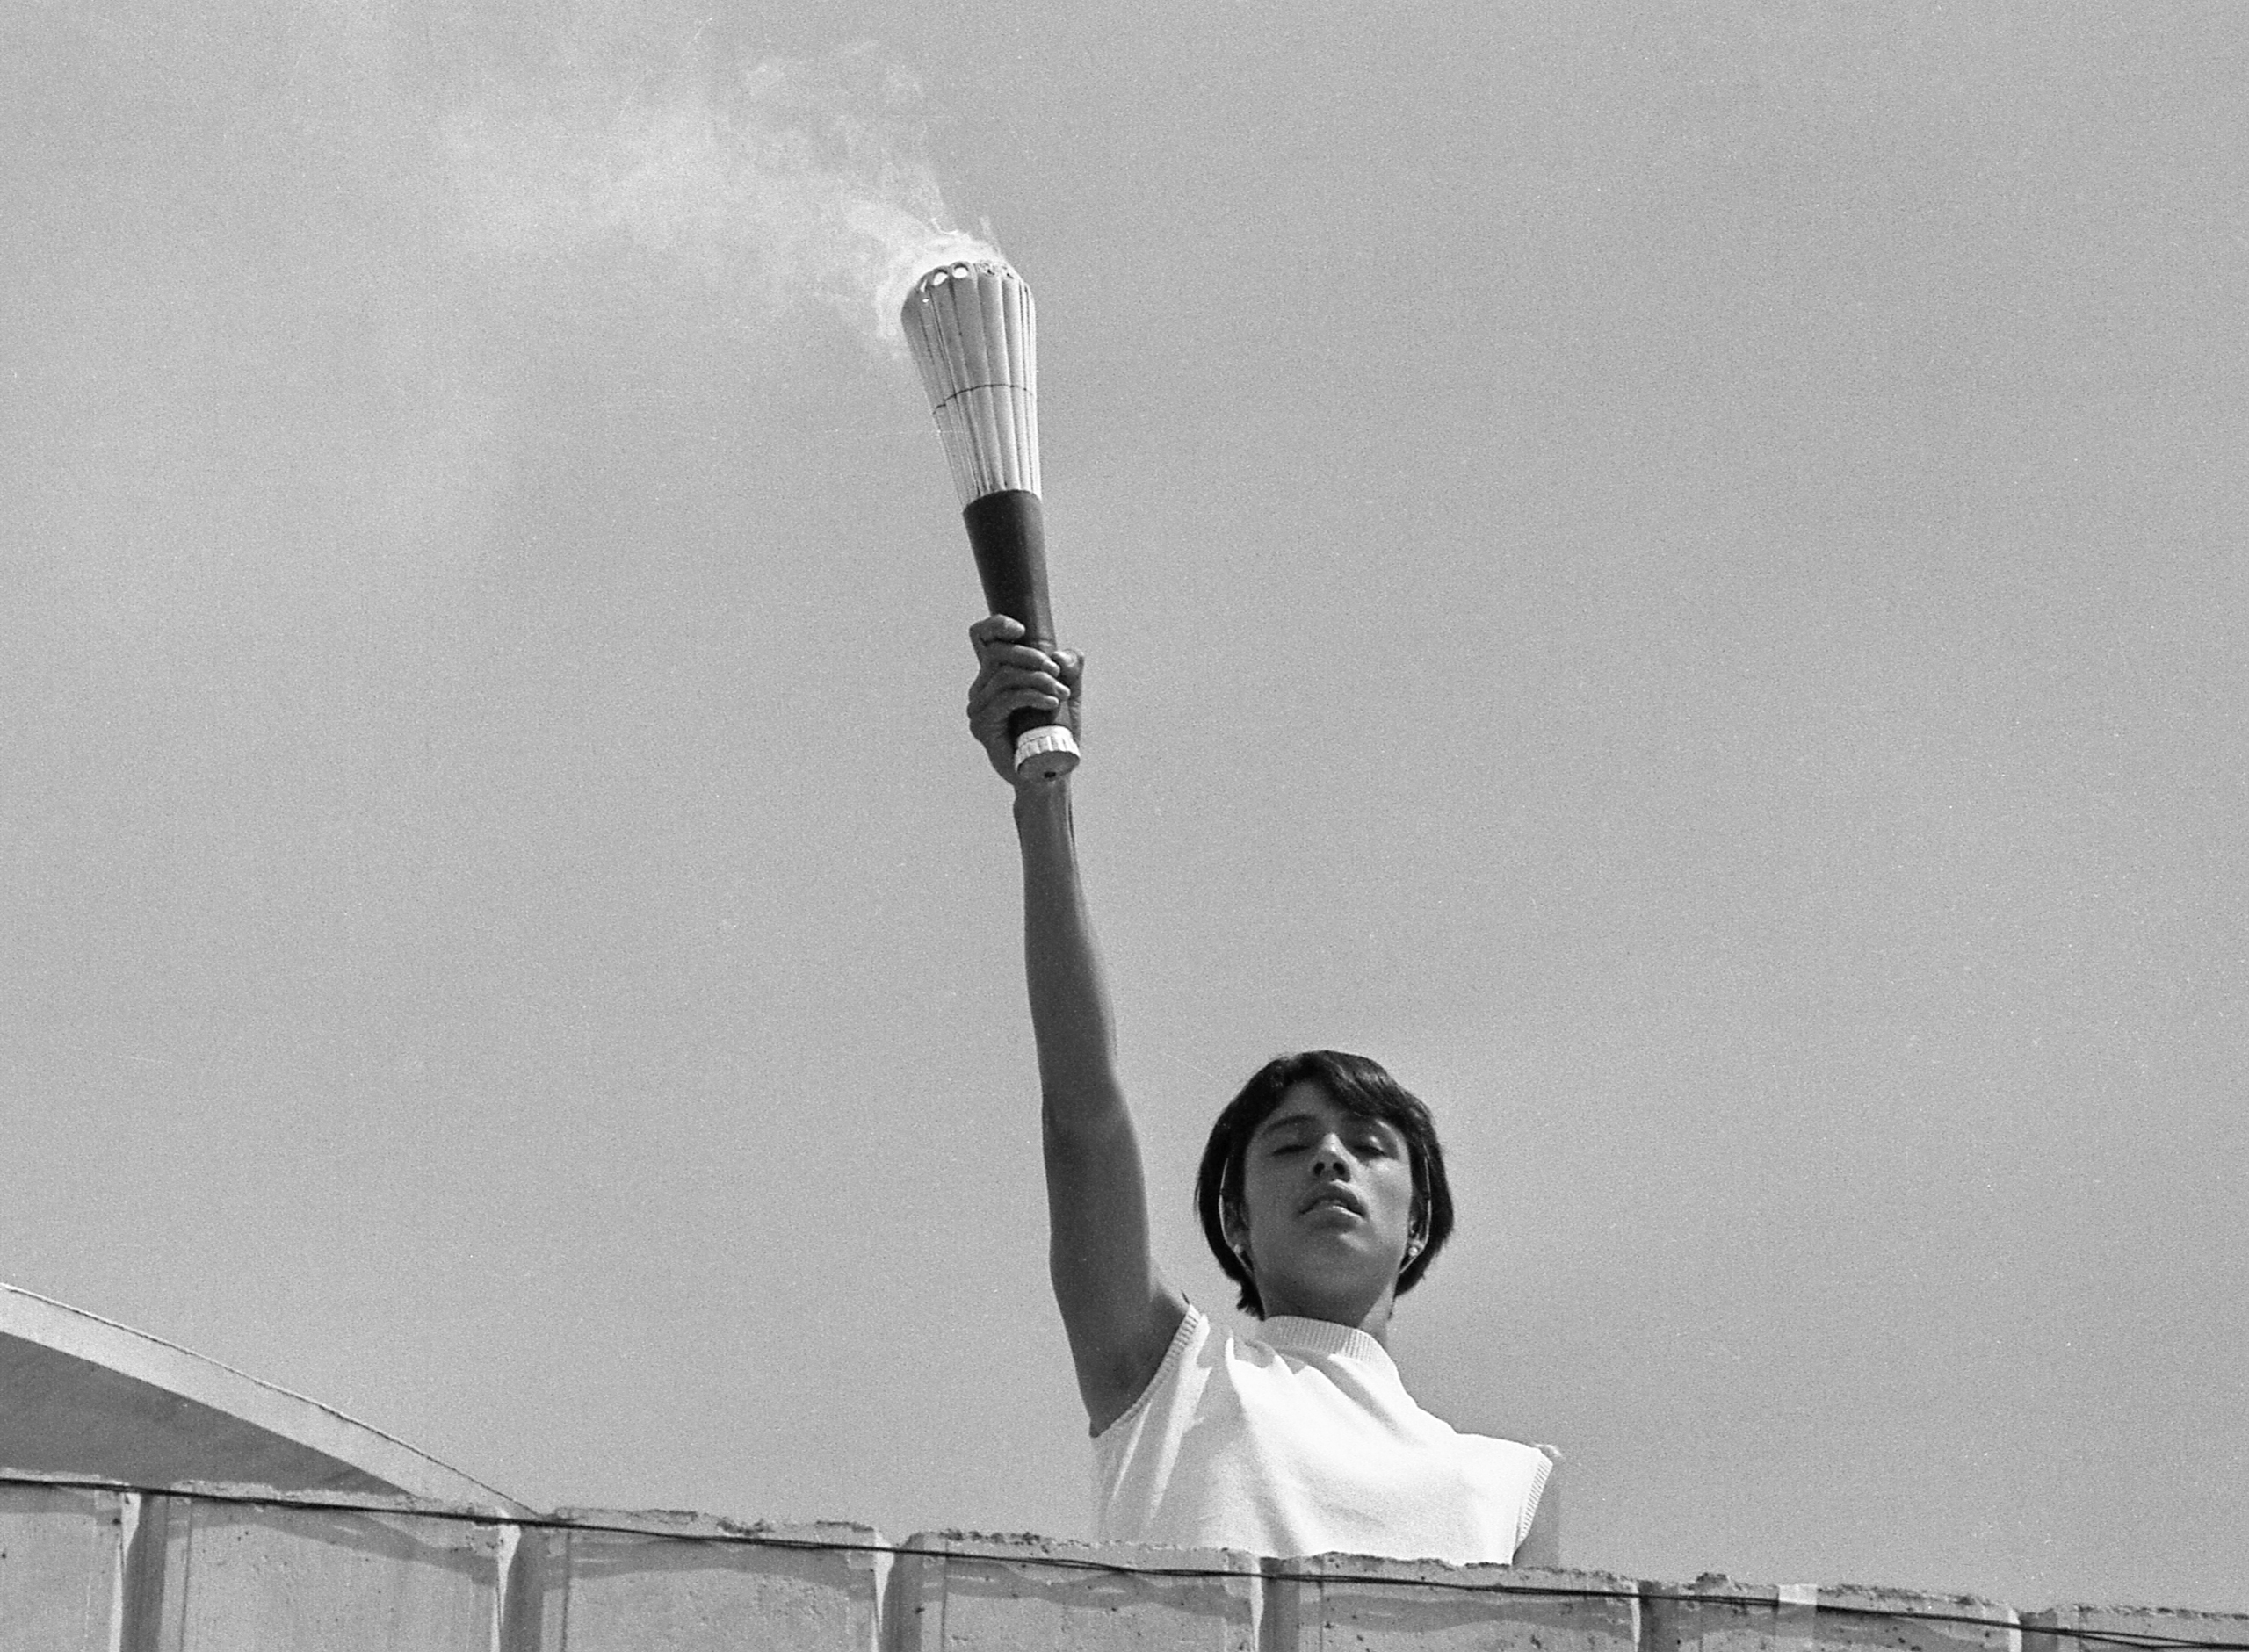 Mexican athlete Norma Enriqueta Basilio, last carrier of the Olympic torch, is pictured a moment before lighting the Olympic Cauldron, during the opening of the 19th Olympic games in Mexico City, Mexico, Oct. 12, 1968.